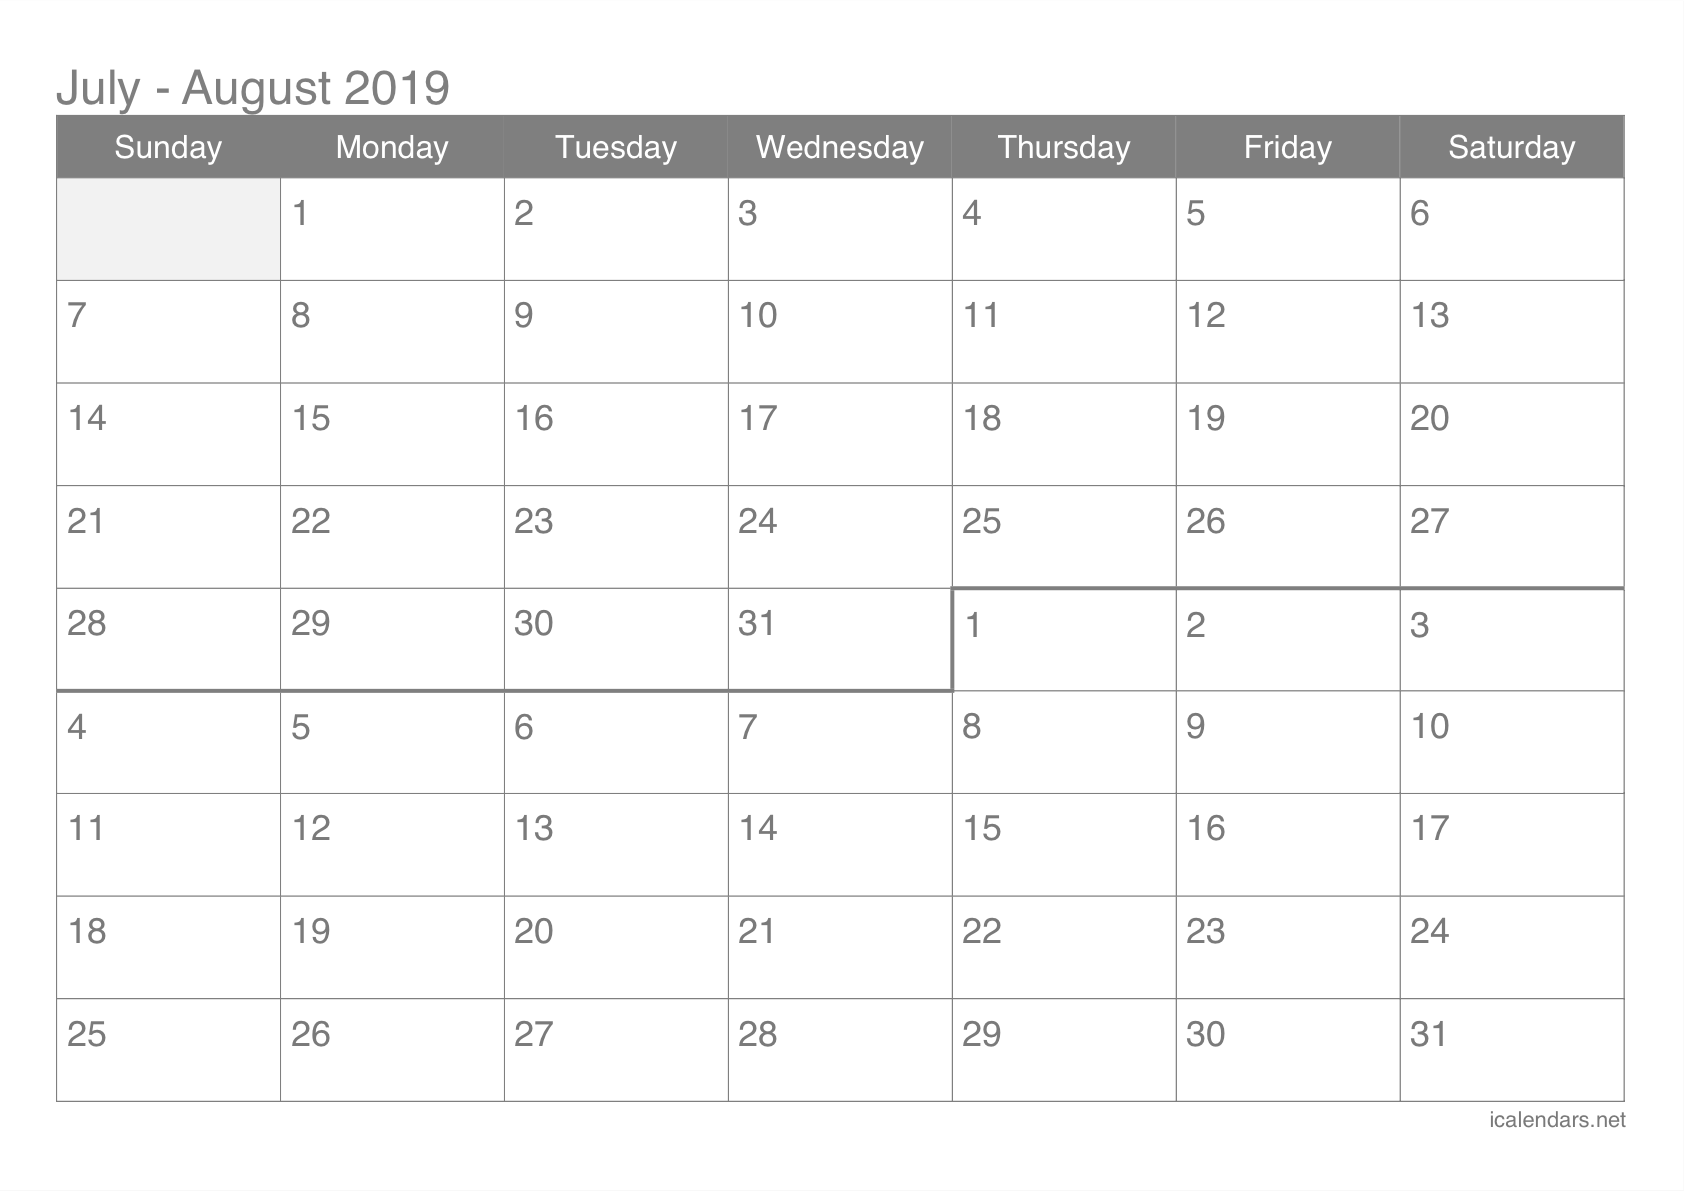 photo regarding Printable Calendars called July and August 2019 Printable Calendar -